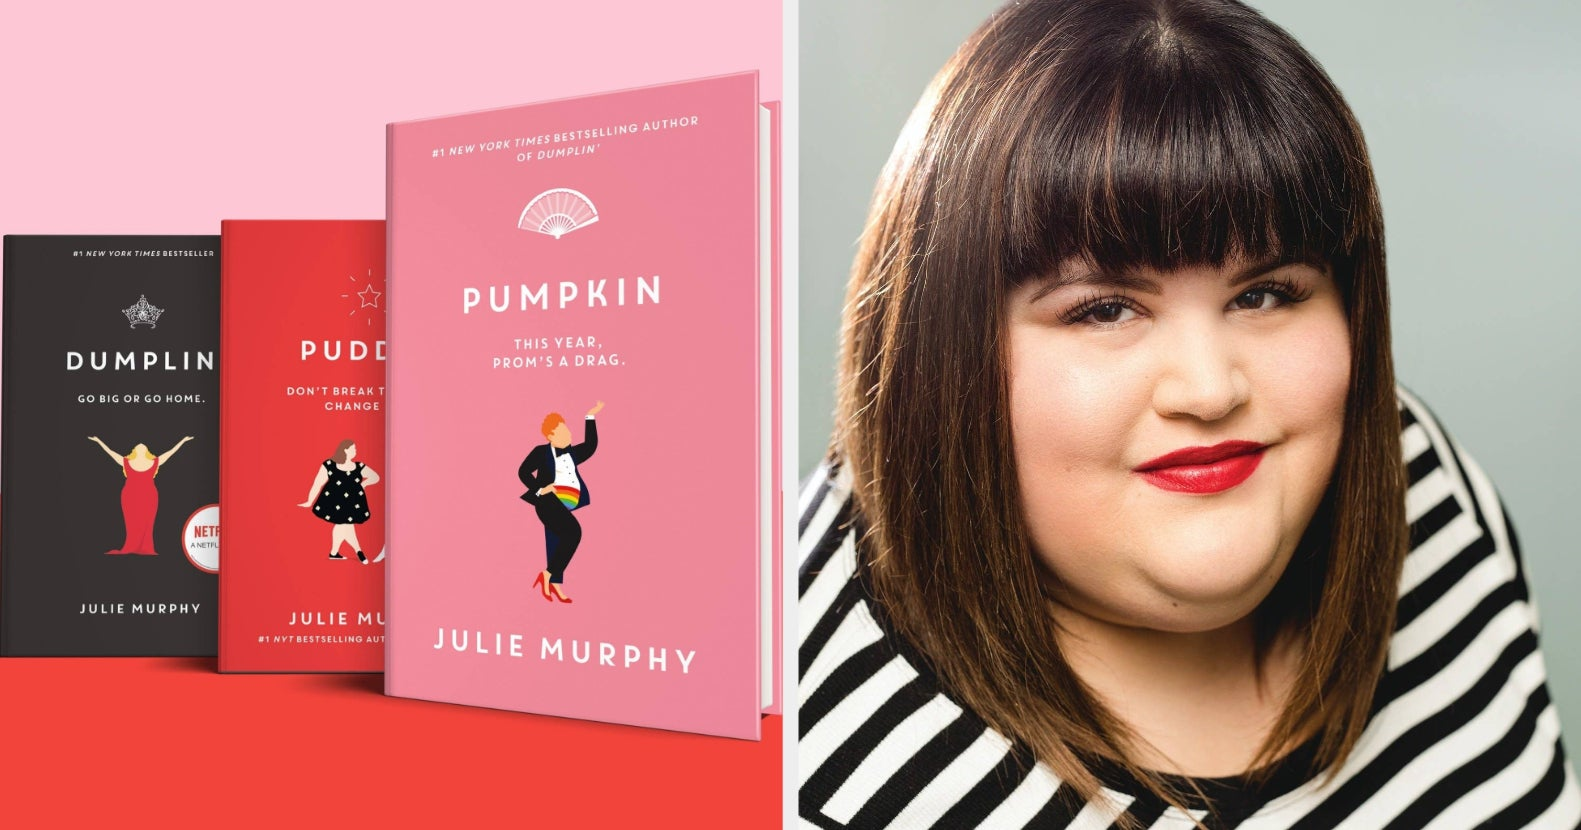 Julie Murphy Is About To Take On 2021 One Book At A Time